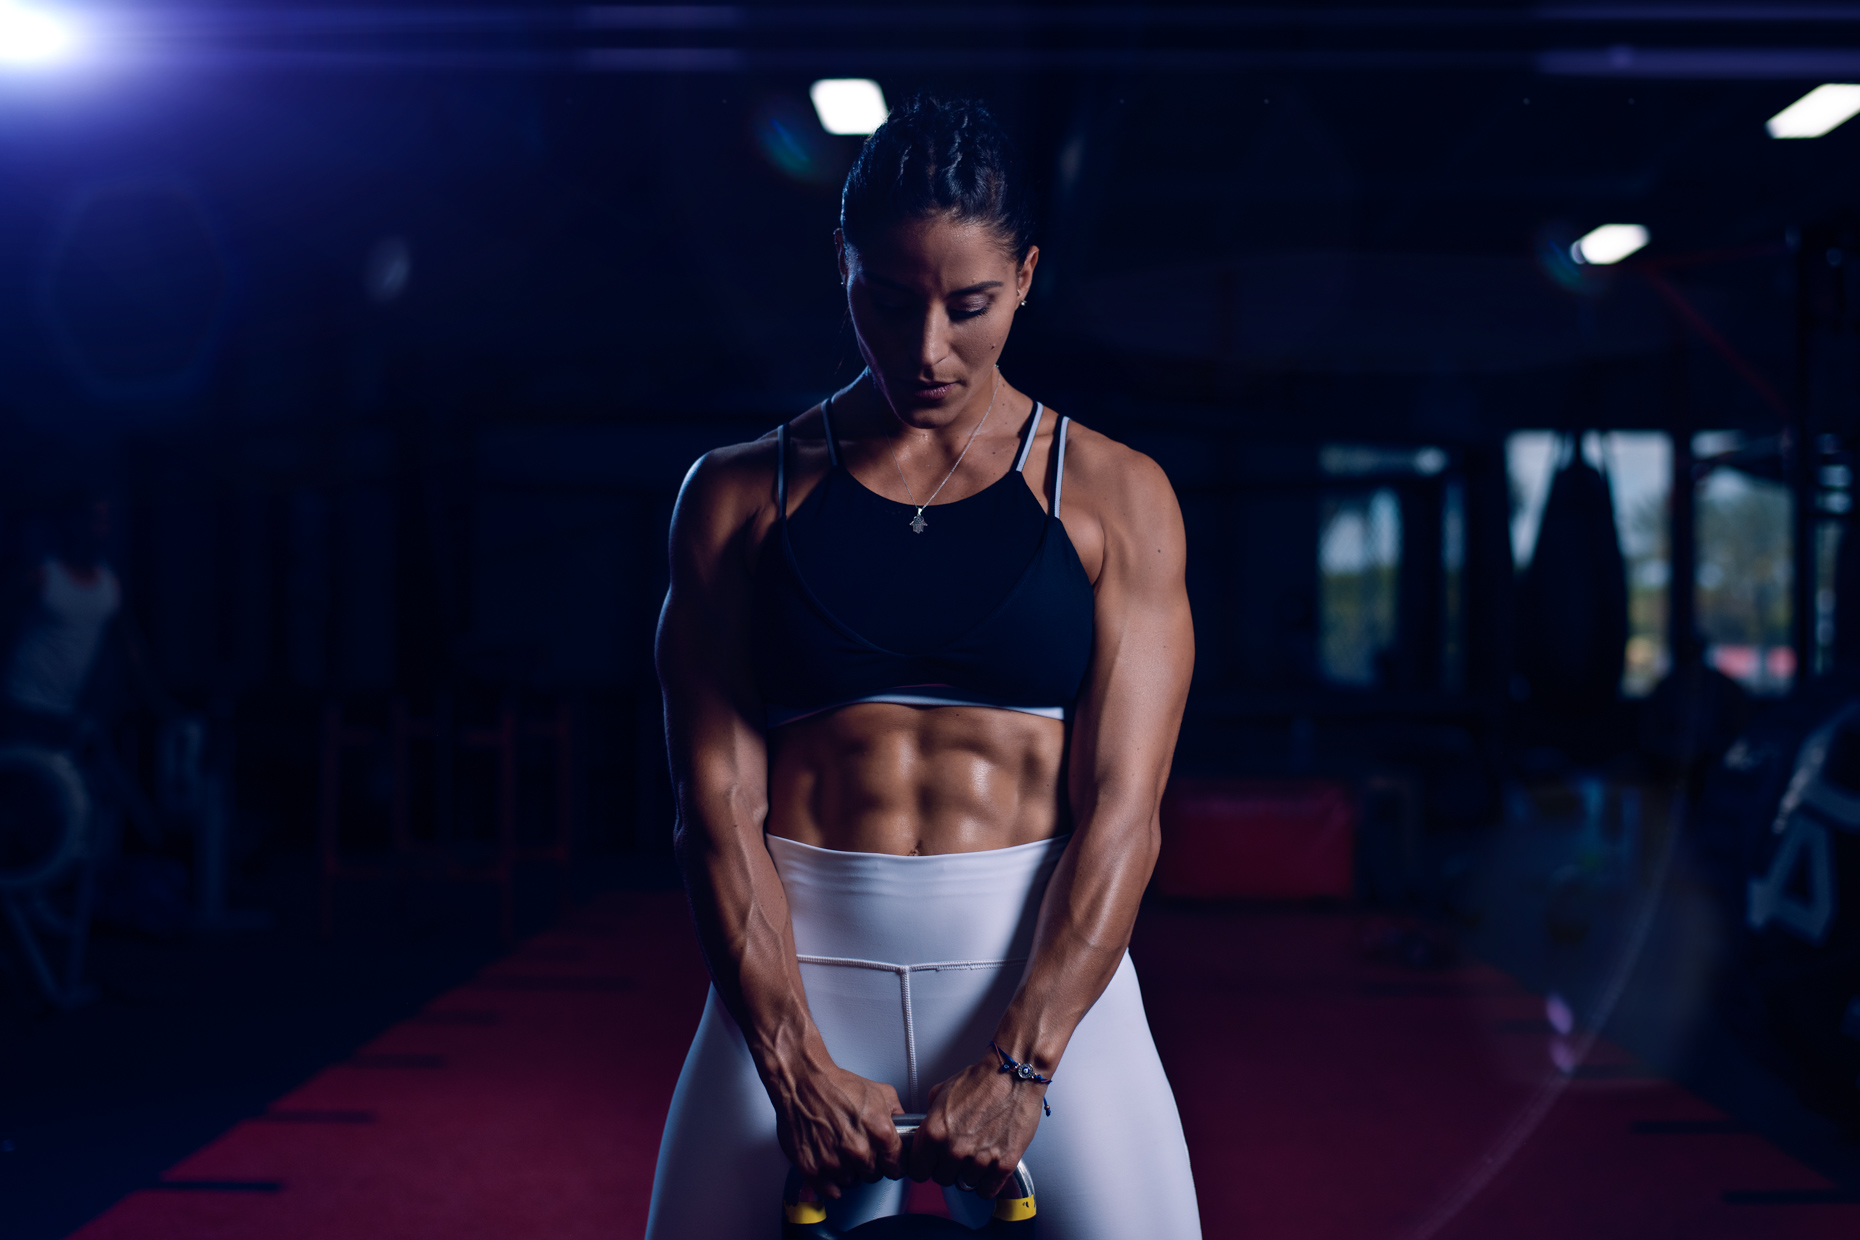 Re - Female fitness athlete kettlebell abs